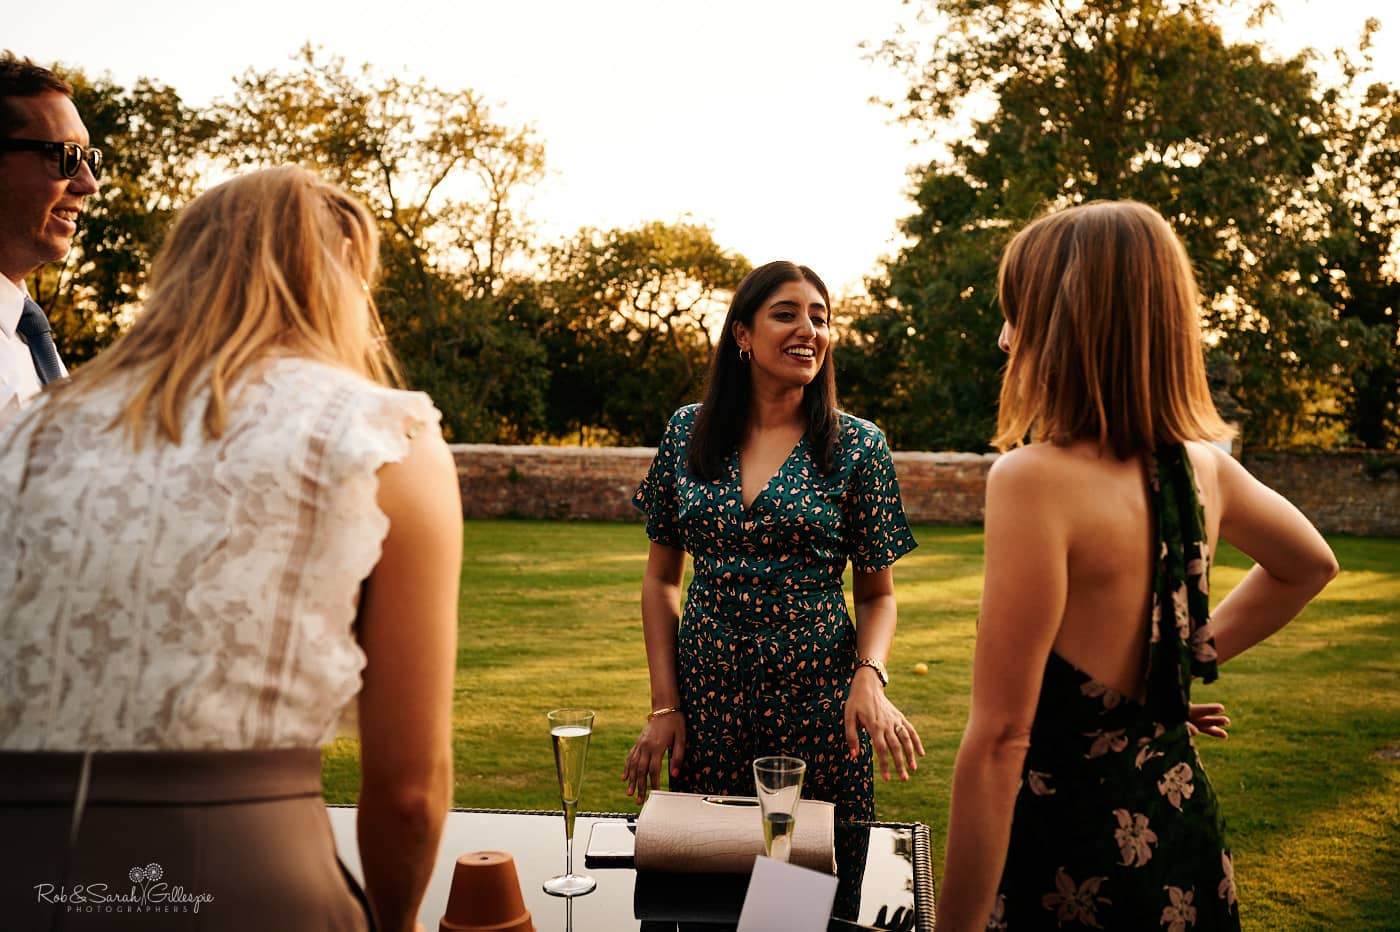 Wedding guests chat during evening reception party